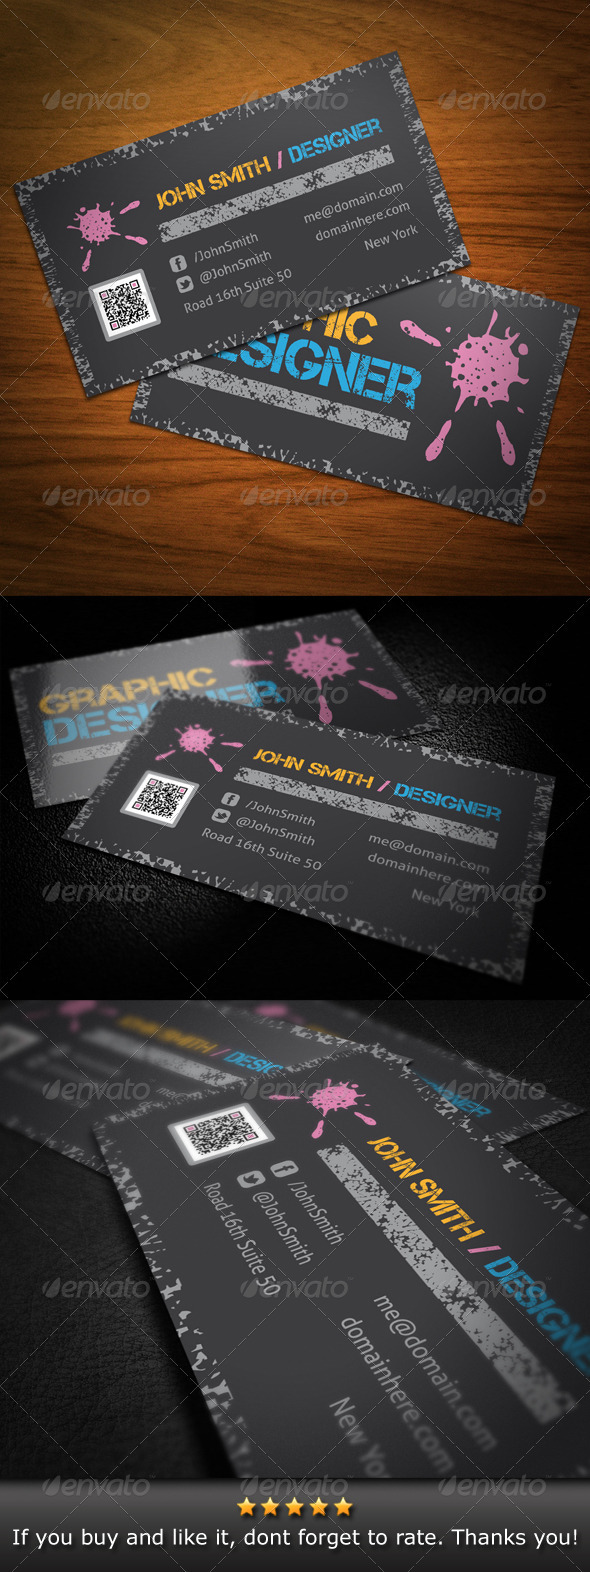 GraphicRiver Grunge Graphic Designer Business Card 3617993